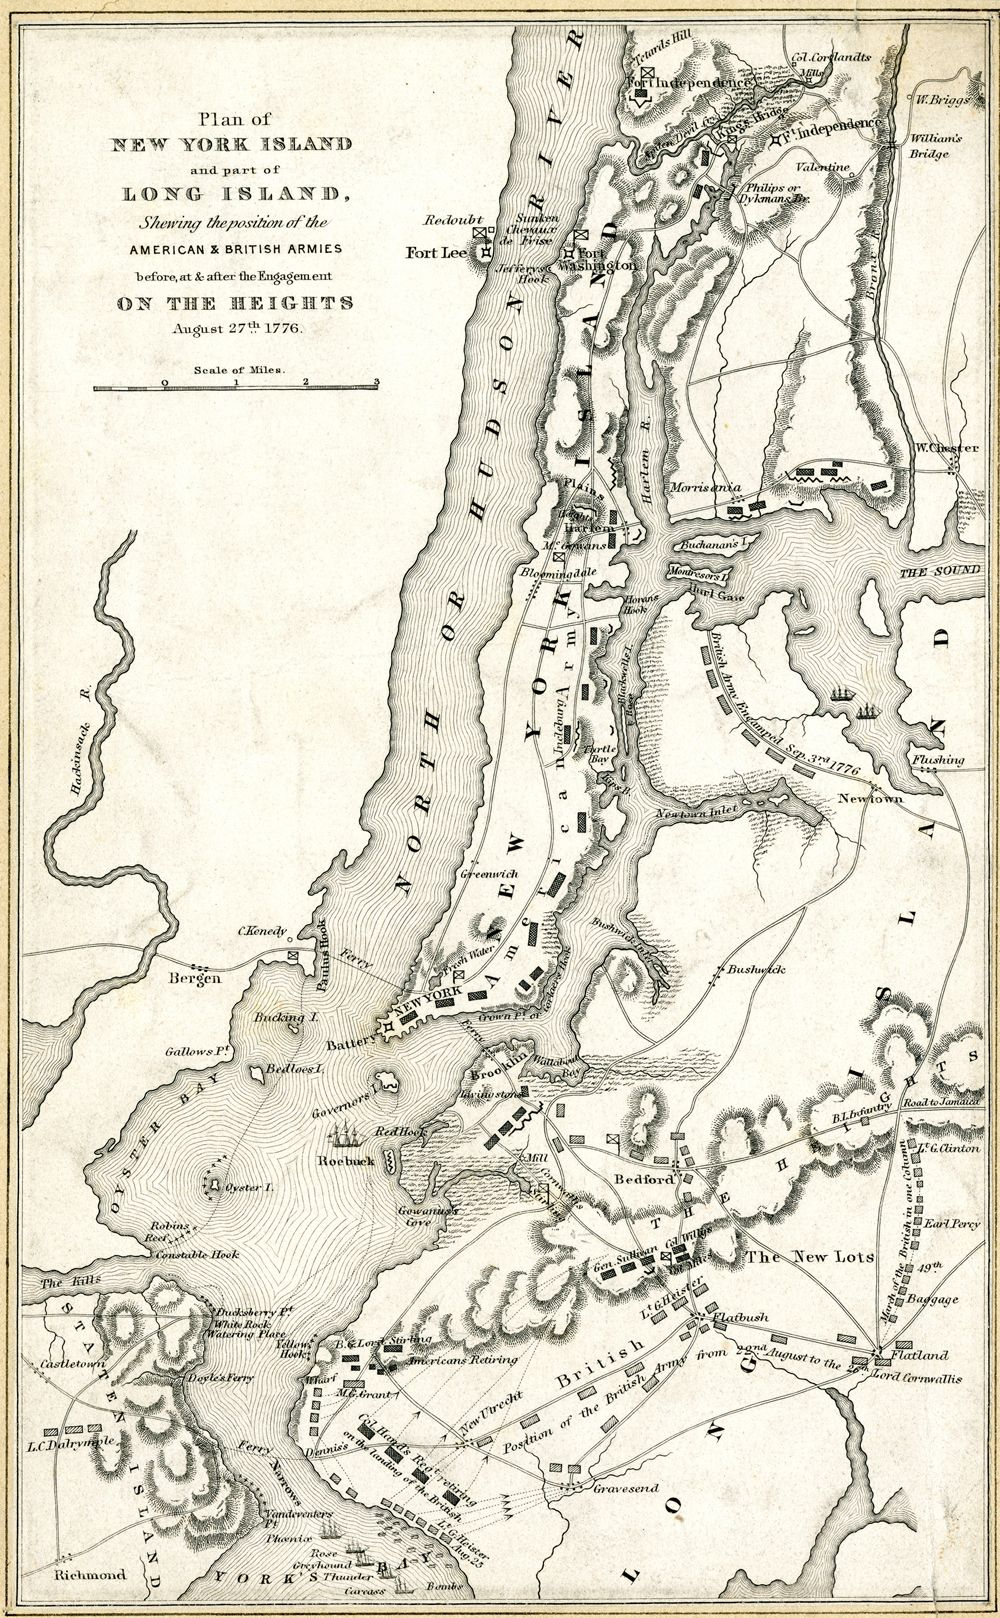 Manhattan and part of Long Island 1776 | Where Am I? | Map ... on map of washington, map of rent, map of the civil war, map of broadway theatre, map of titanic, map of sunset boulevard, map of republic of rome, map of alexander the great, map of truman, map of independence hall, map of gettysburg, map of thomas jefferson, map of allegro, map of d-day, map of johnny tremain, map of greece, map of bonnie & clyde, map of memphis, map of gypsy, map of assassins,